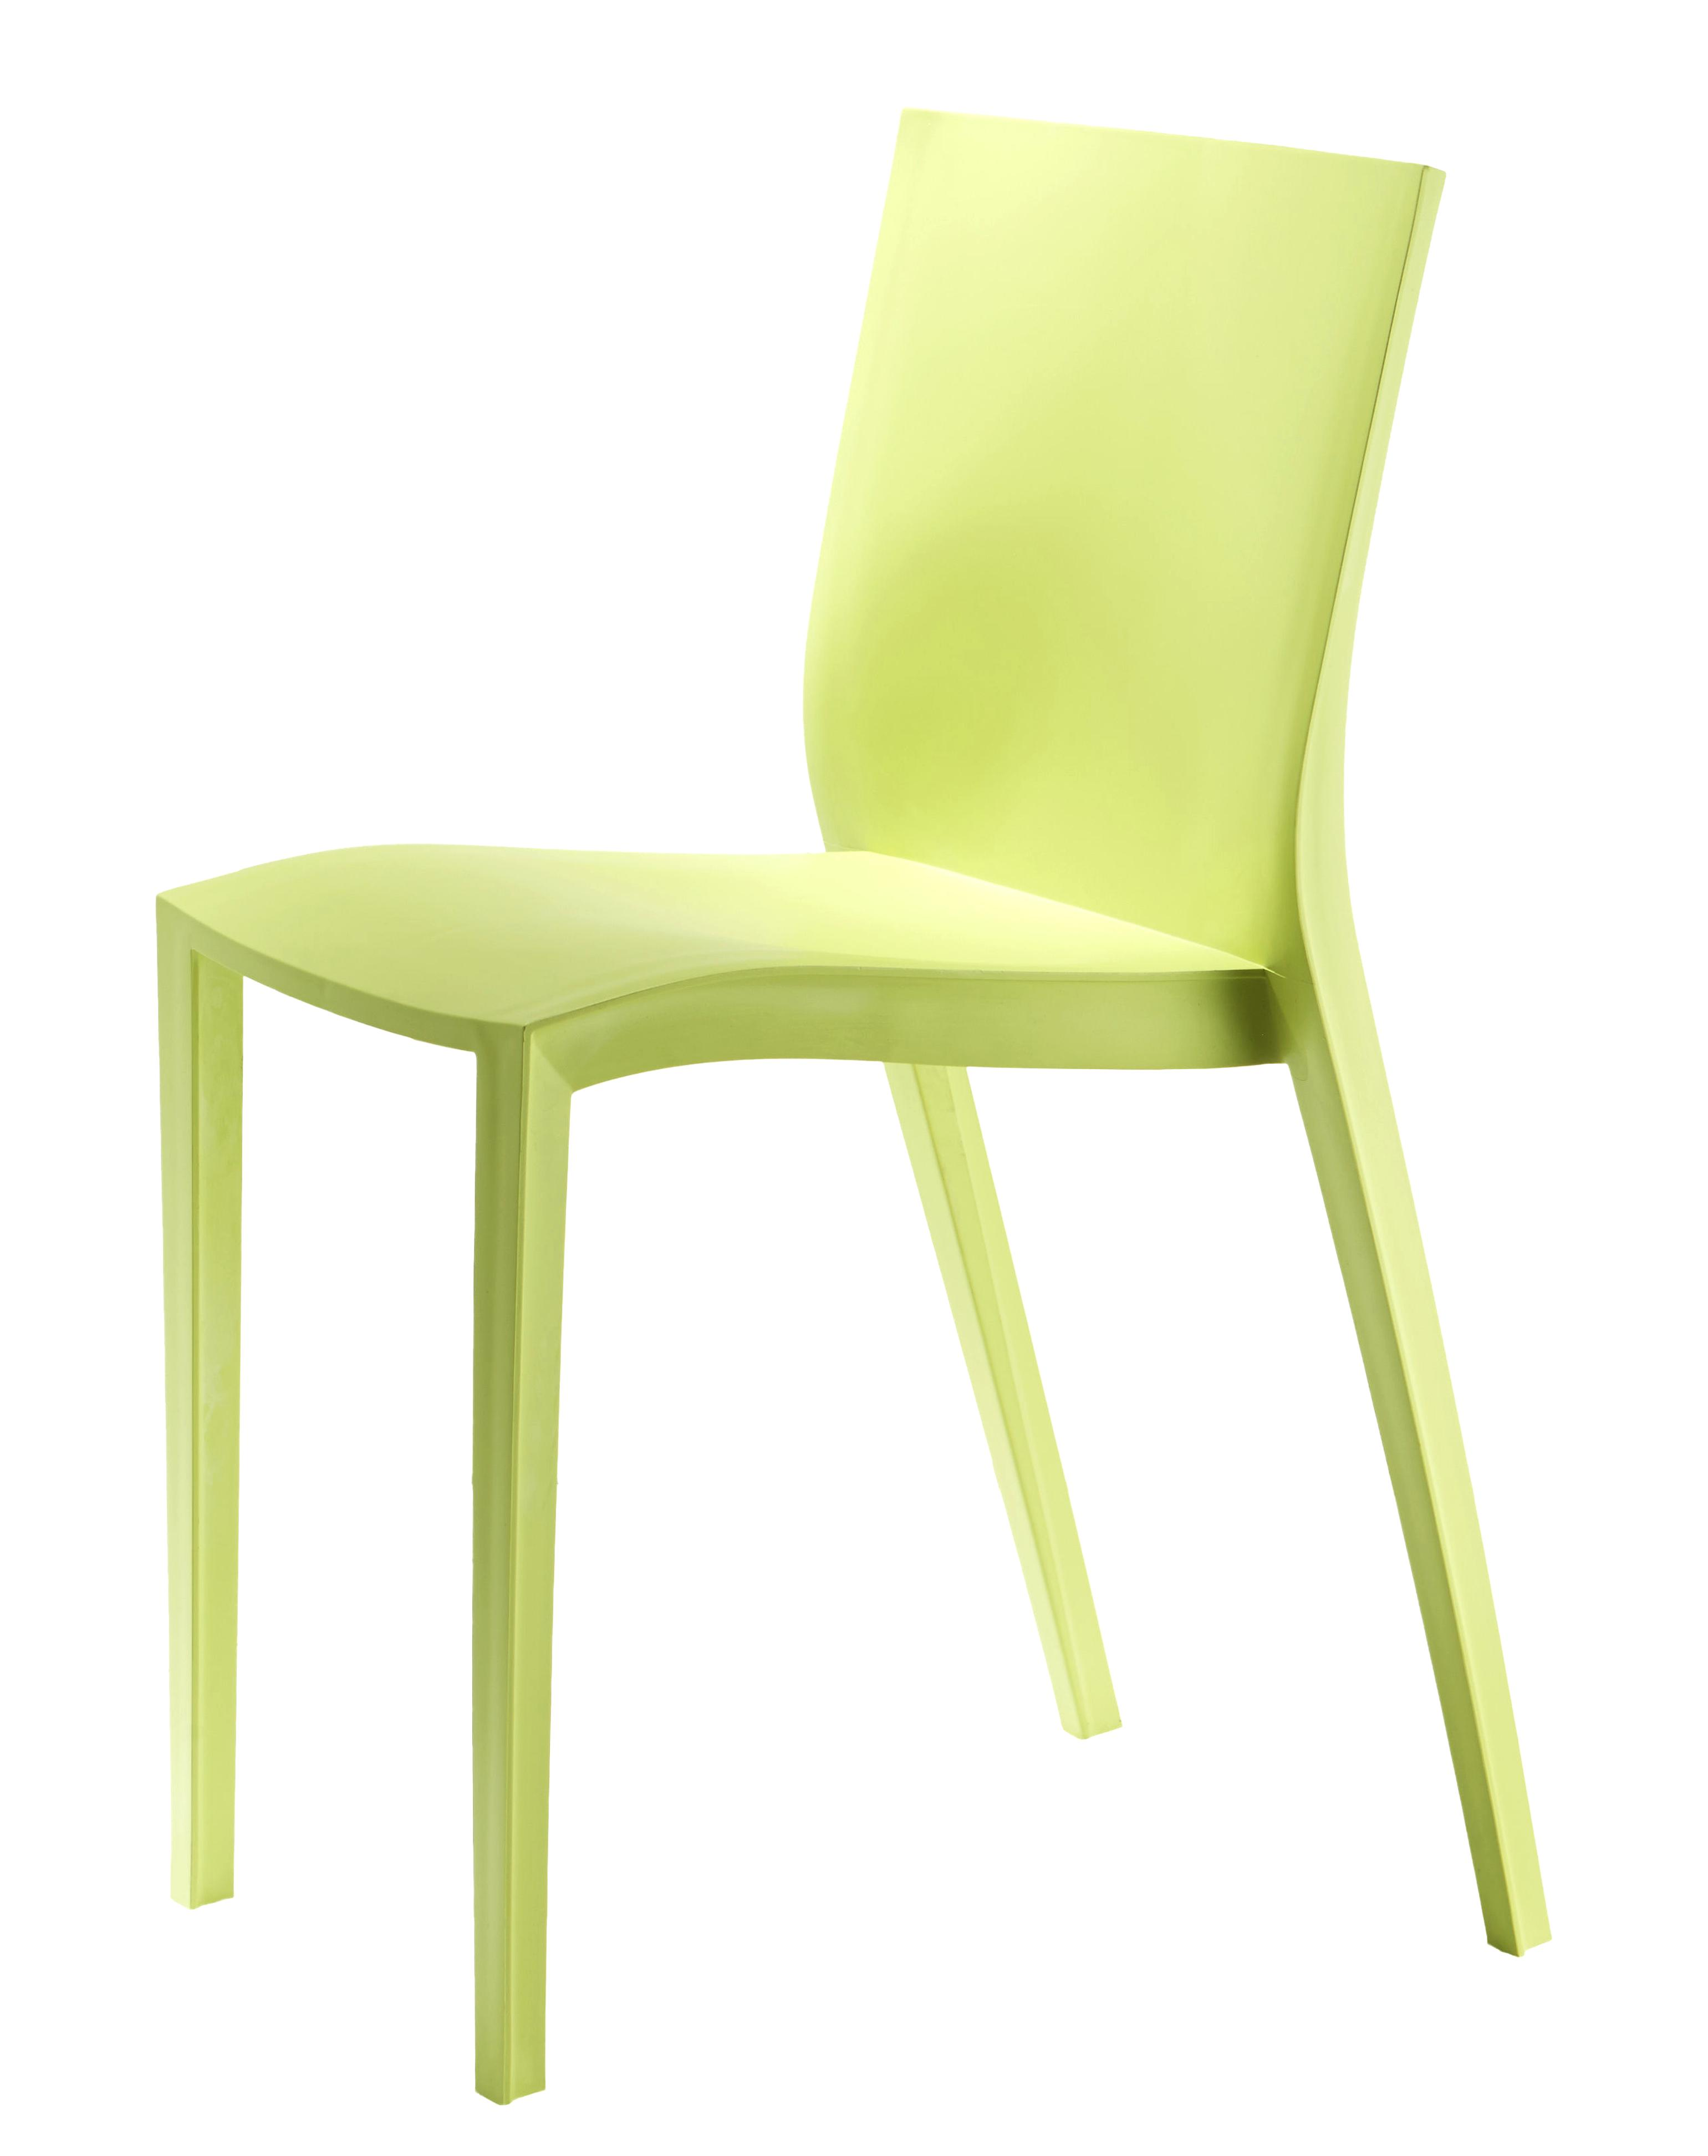 Chaise Starck Slick d'occasion